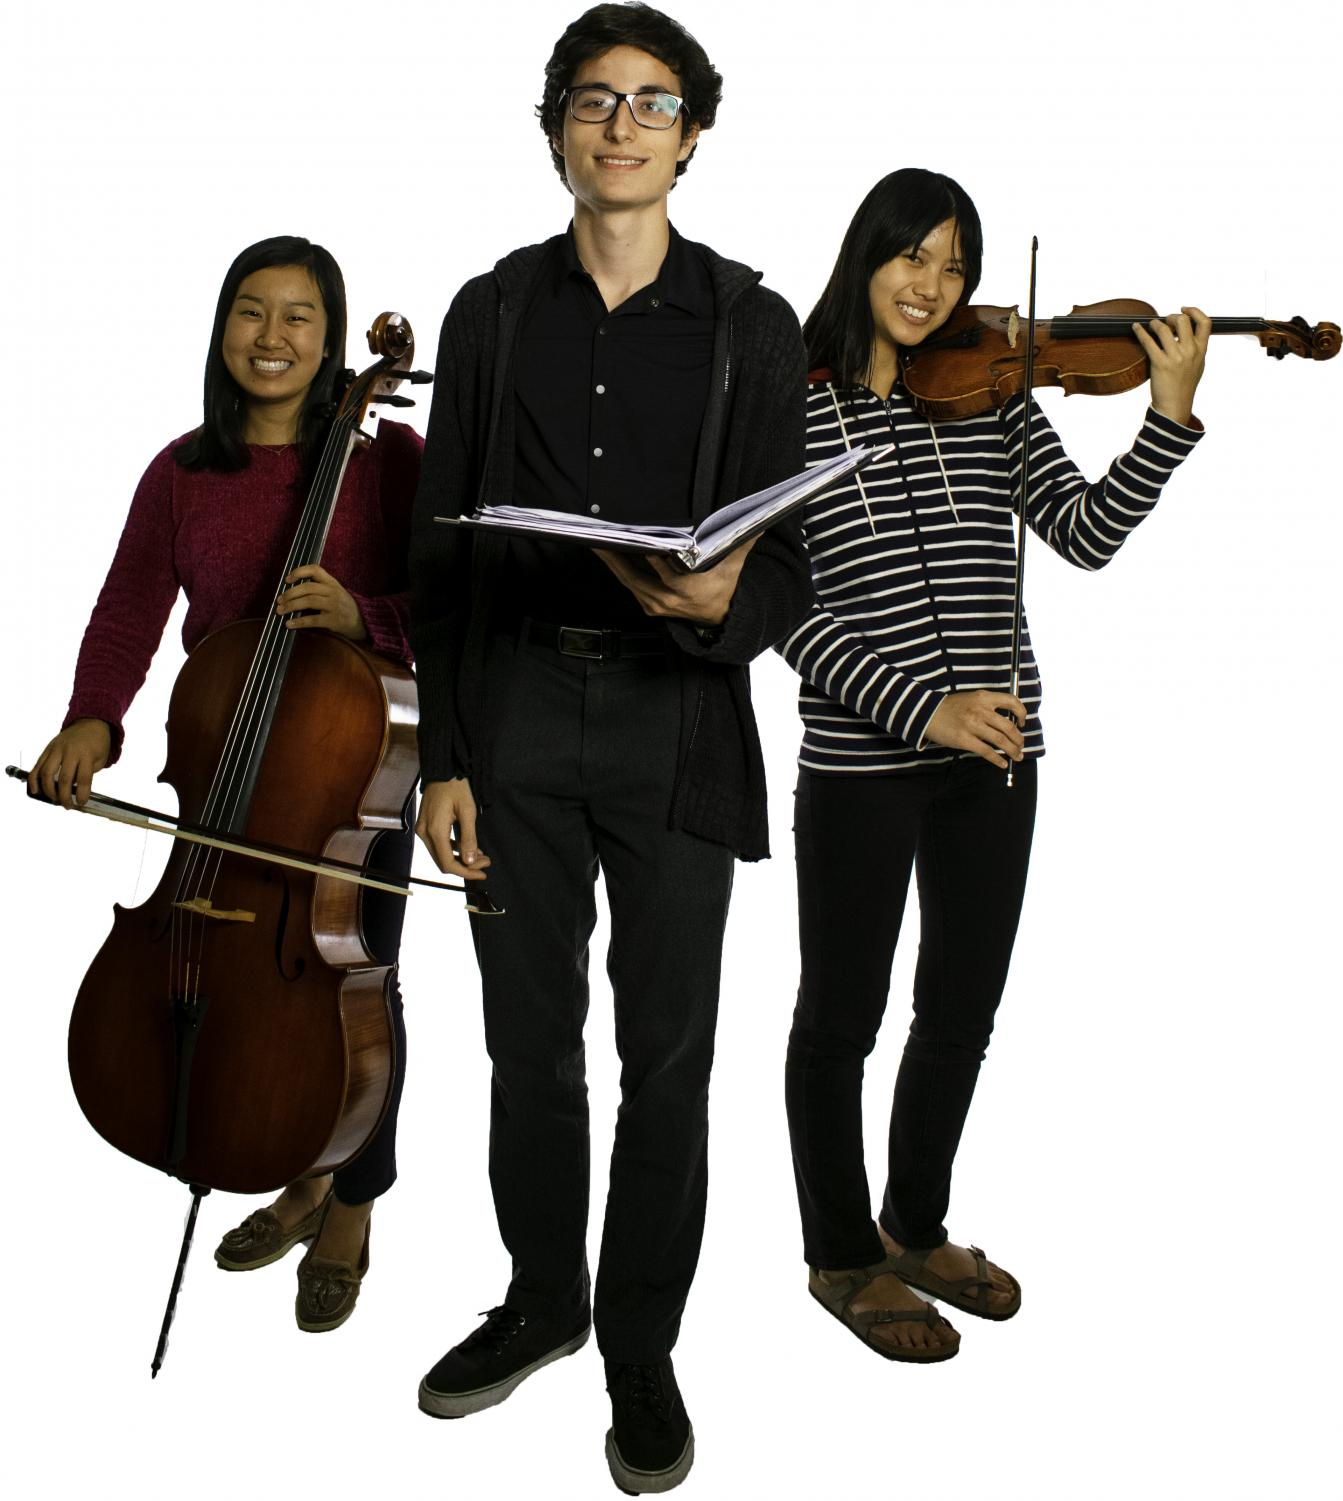 Lillian Pope (left), Daniel Galvez (middle) and Marion Pope (right) participate in national events for their artistic talents.